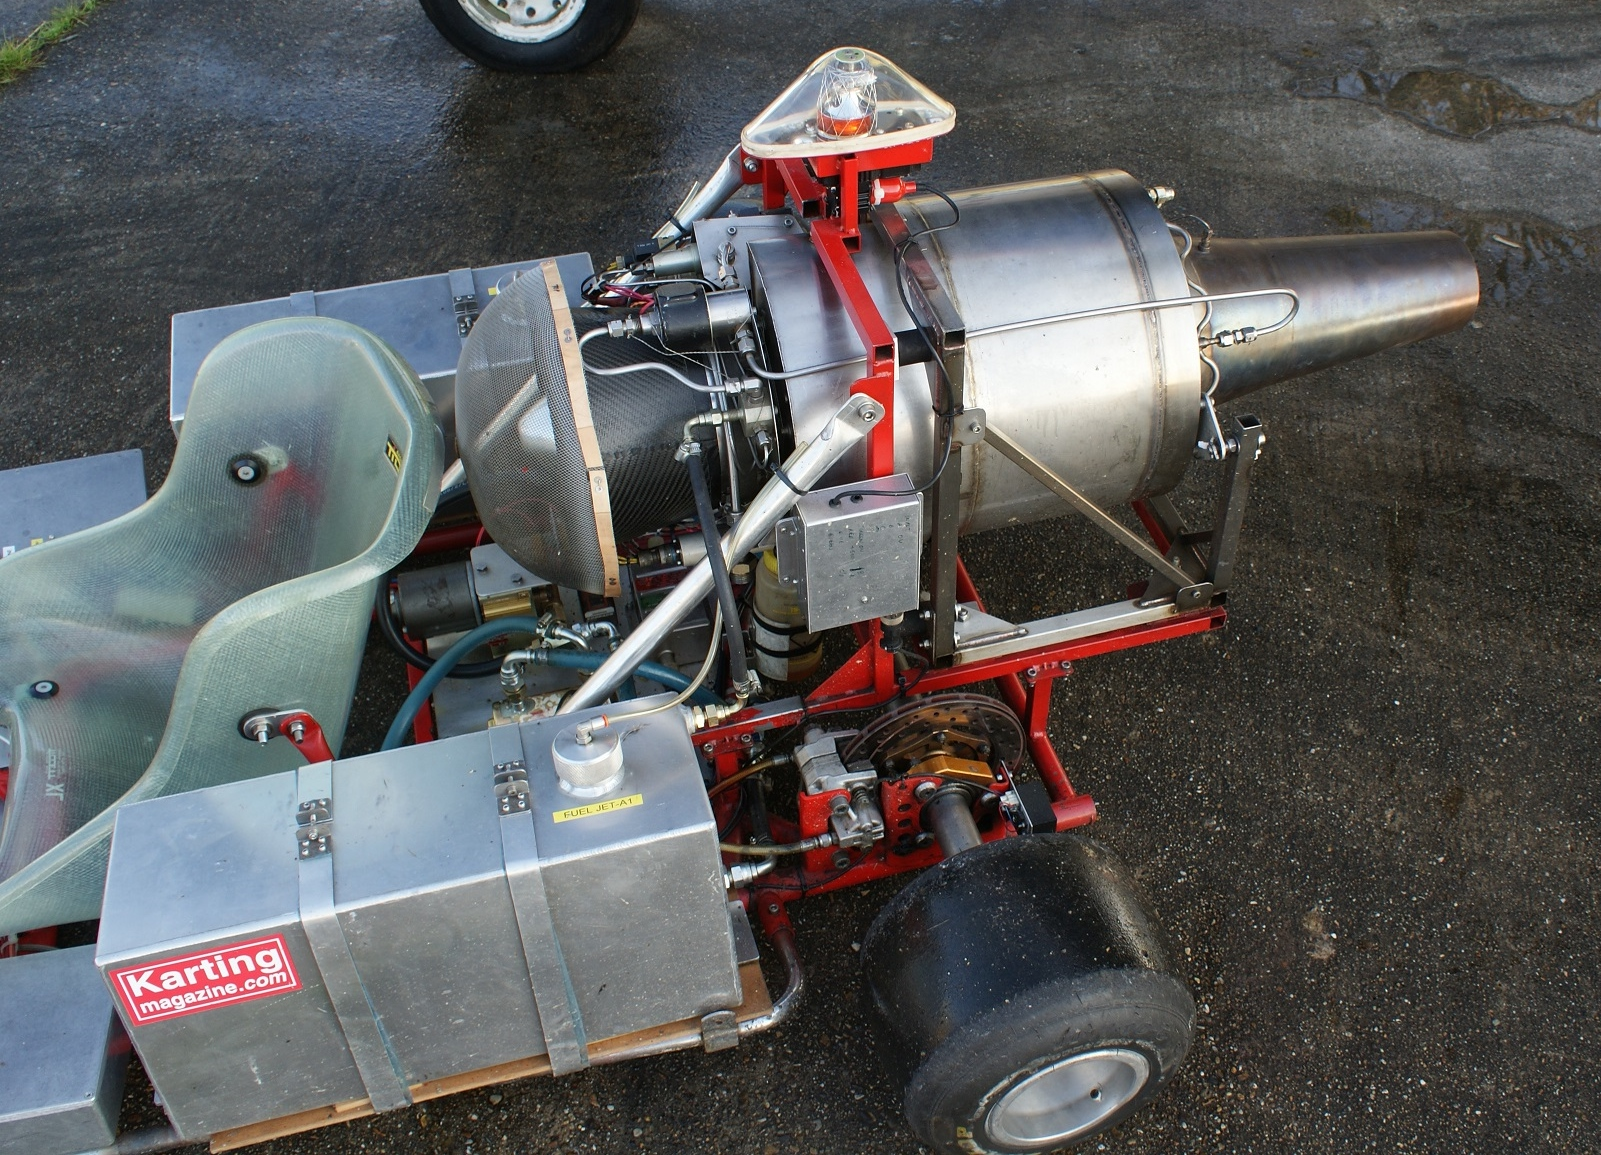 Close Up View Showing NPT 301 Power Unit